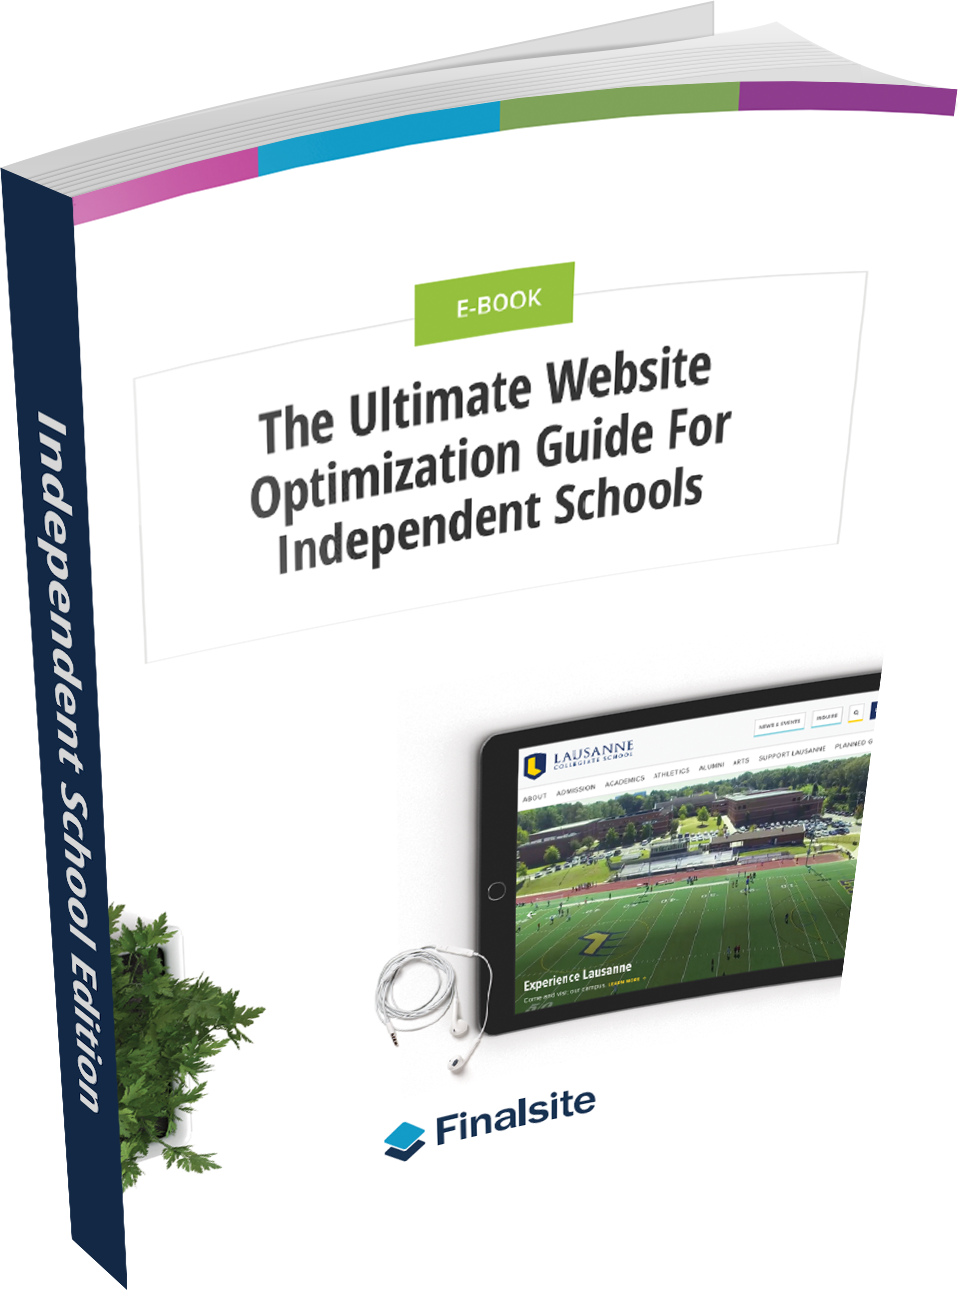 eBook: The Ultimate Website Optimization Guide for Schools